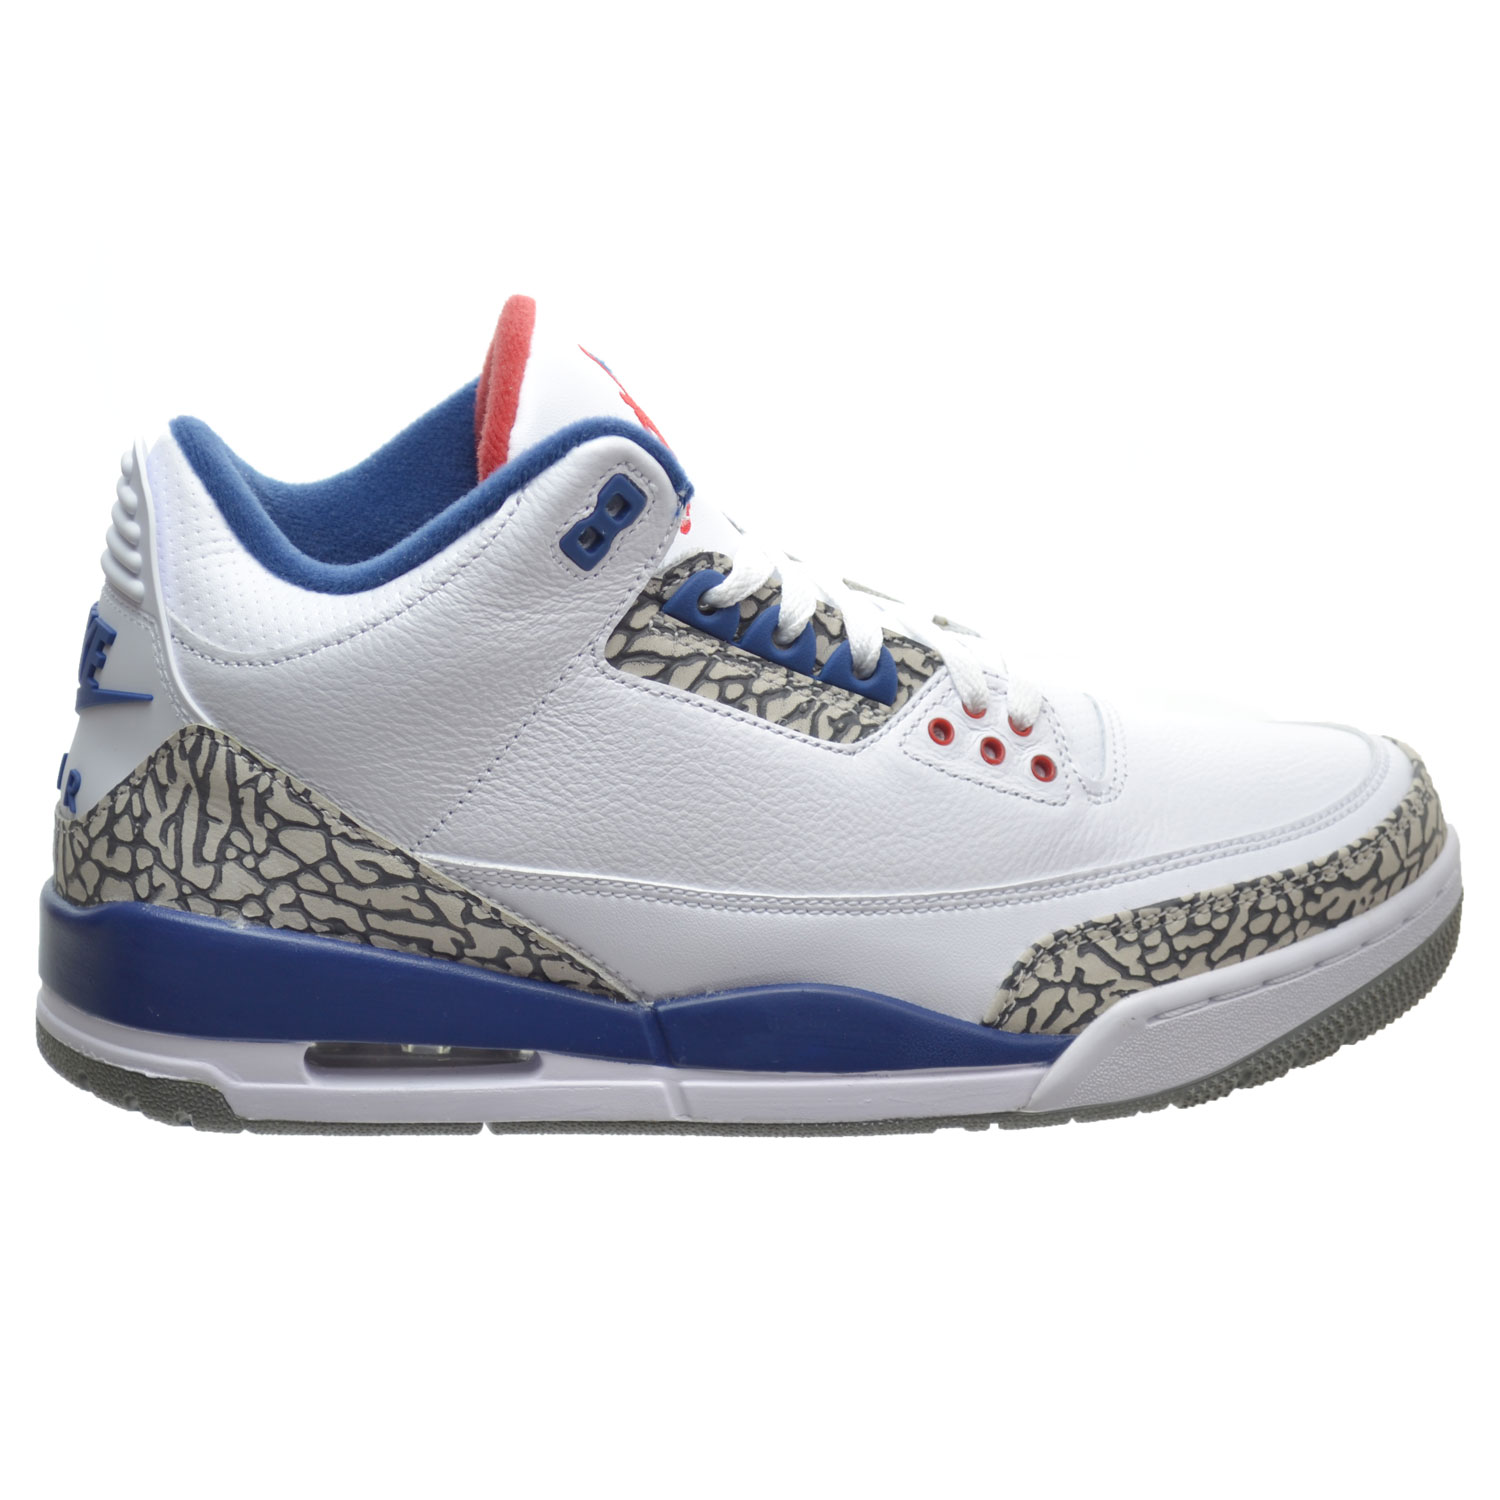 f110aaba654466 Air Jordan 3 Retro OG Men s Shoes White Fire Red True Blue 854262 ...